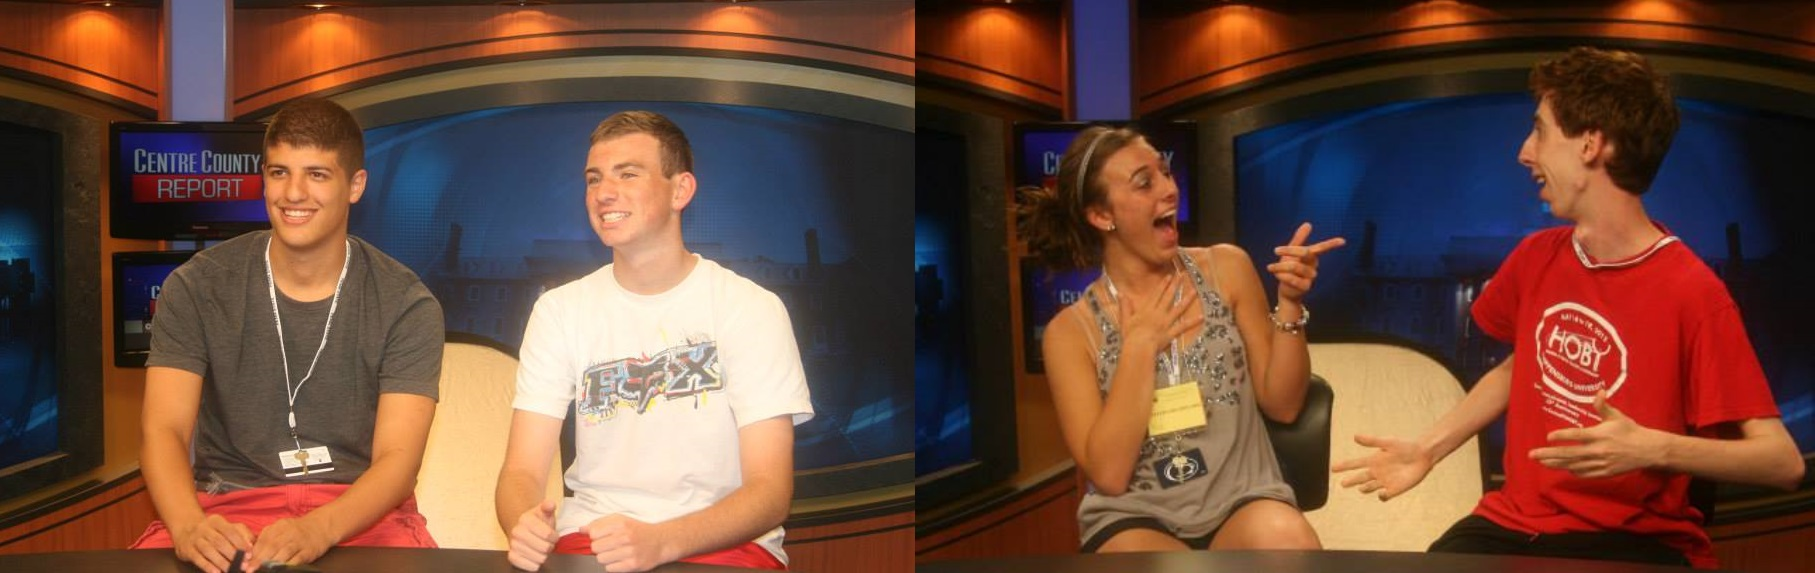 Broadcast journalism on the Centre County Report set